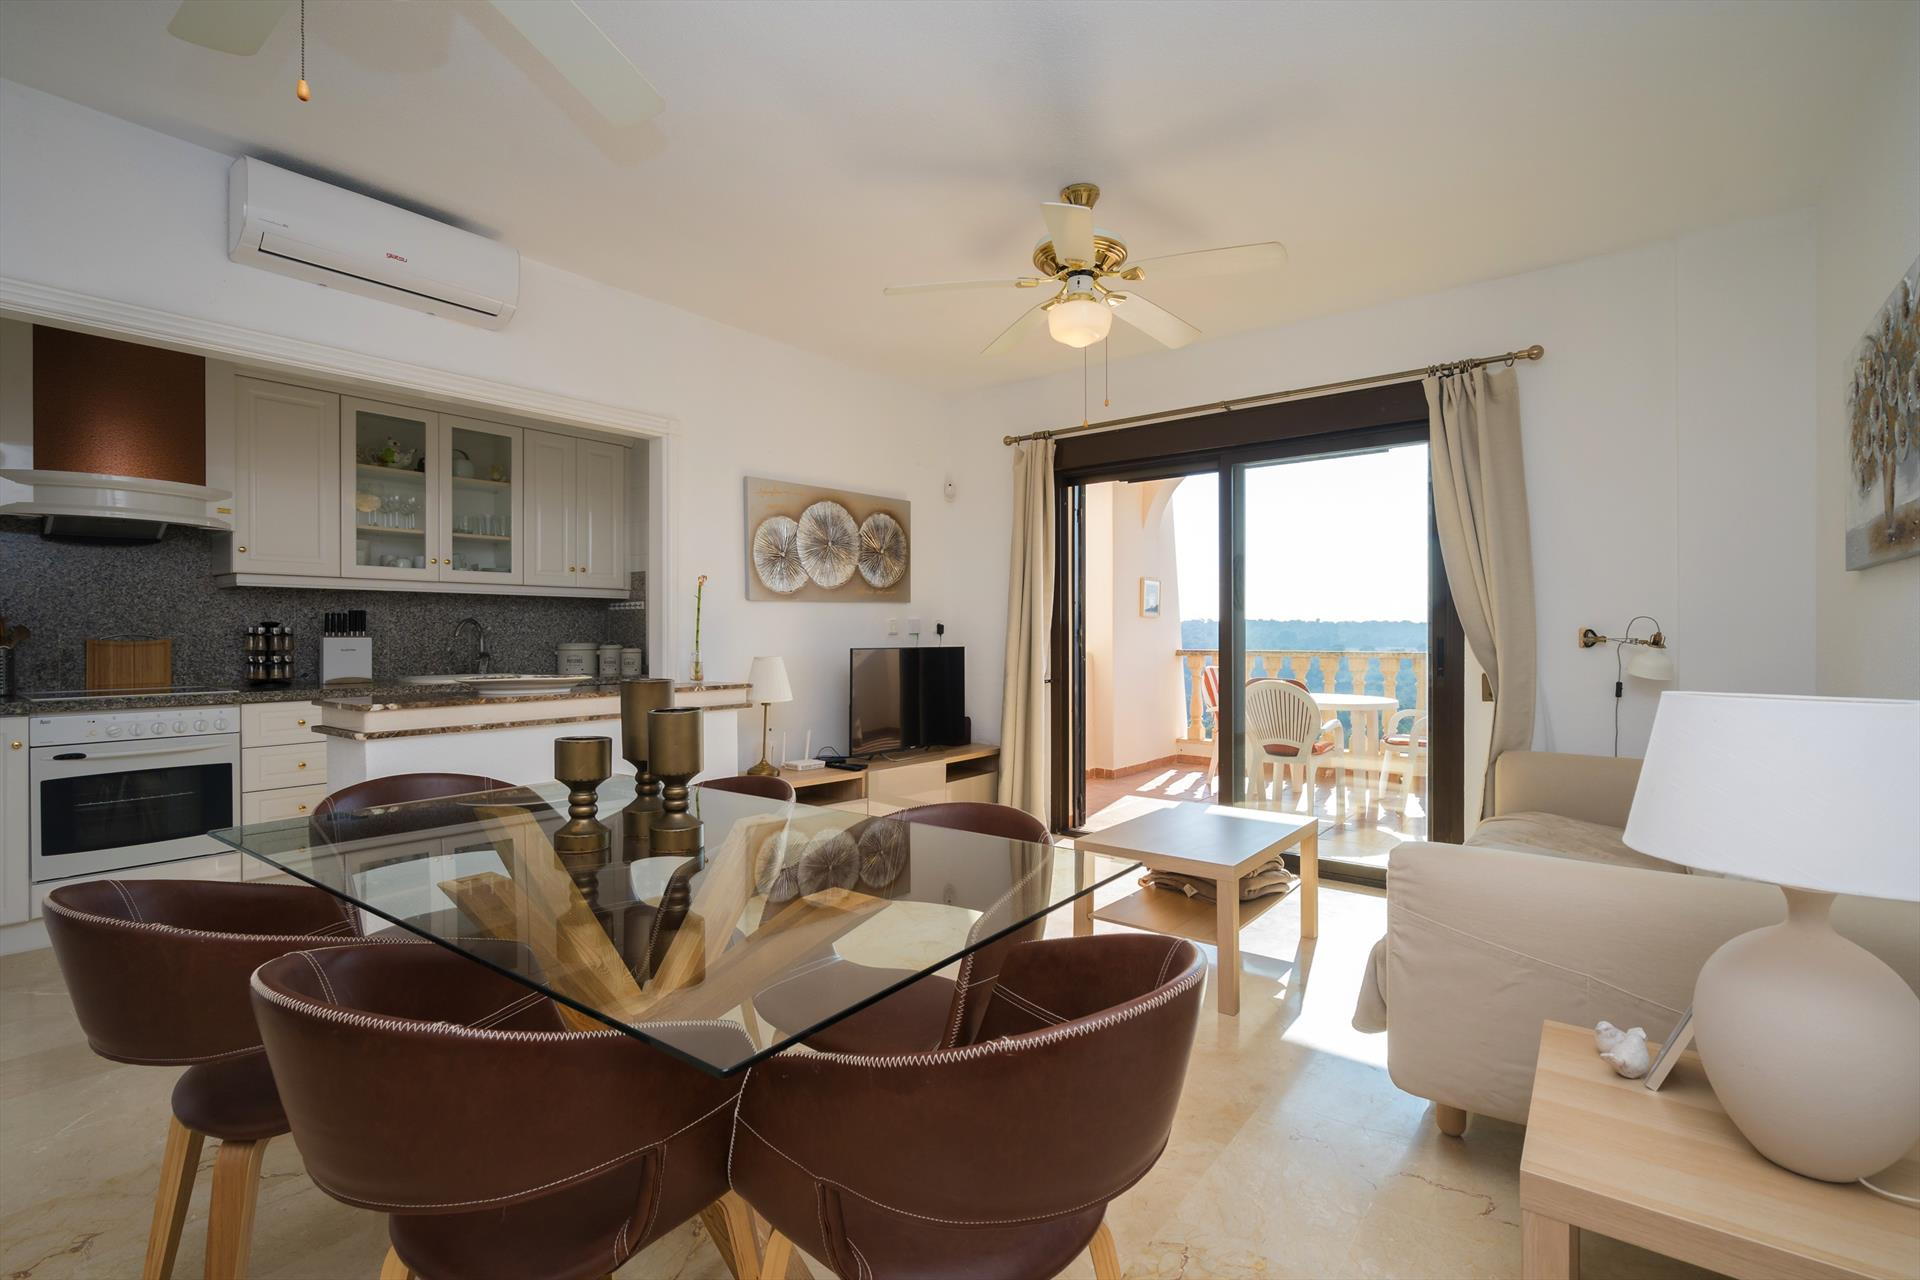 Altamira,Wonderful apartment in Orihuela Costa, on the Costa Blanca, Spain  with communal pool for 4 persons.....